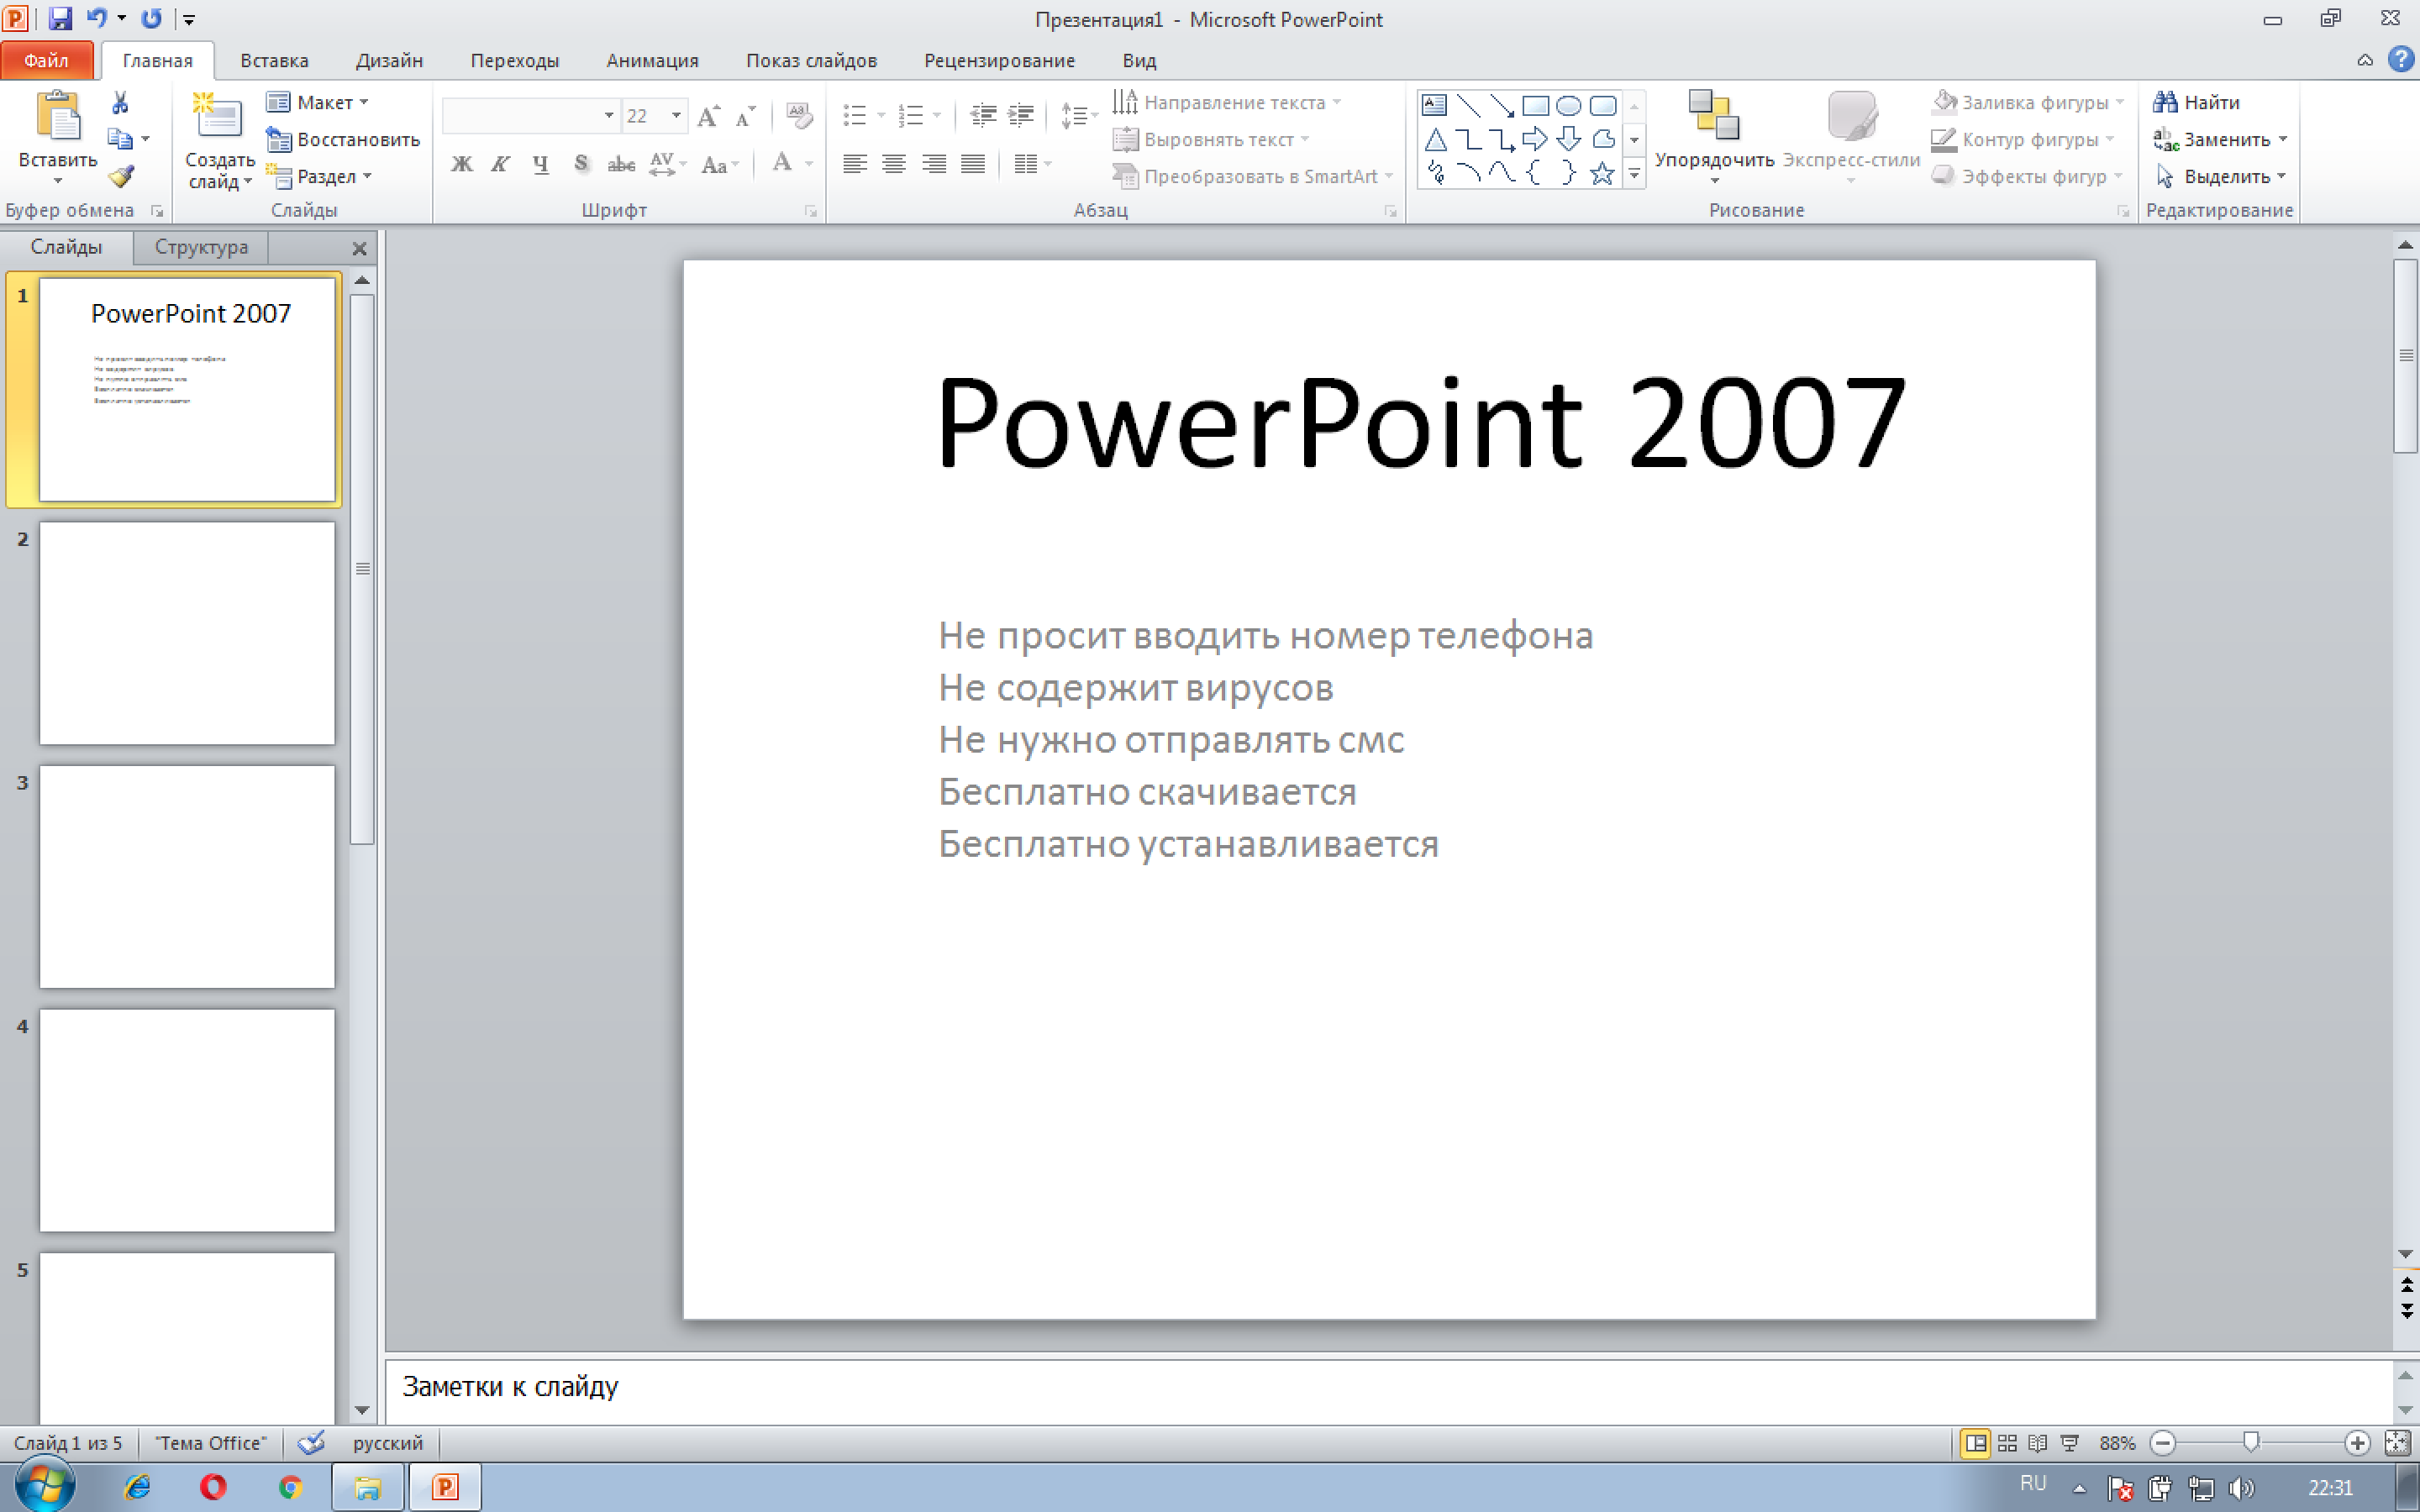 Download powerpoint viewer from official microsoft - Free download ms office powerpoint 2007 ...